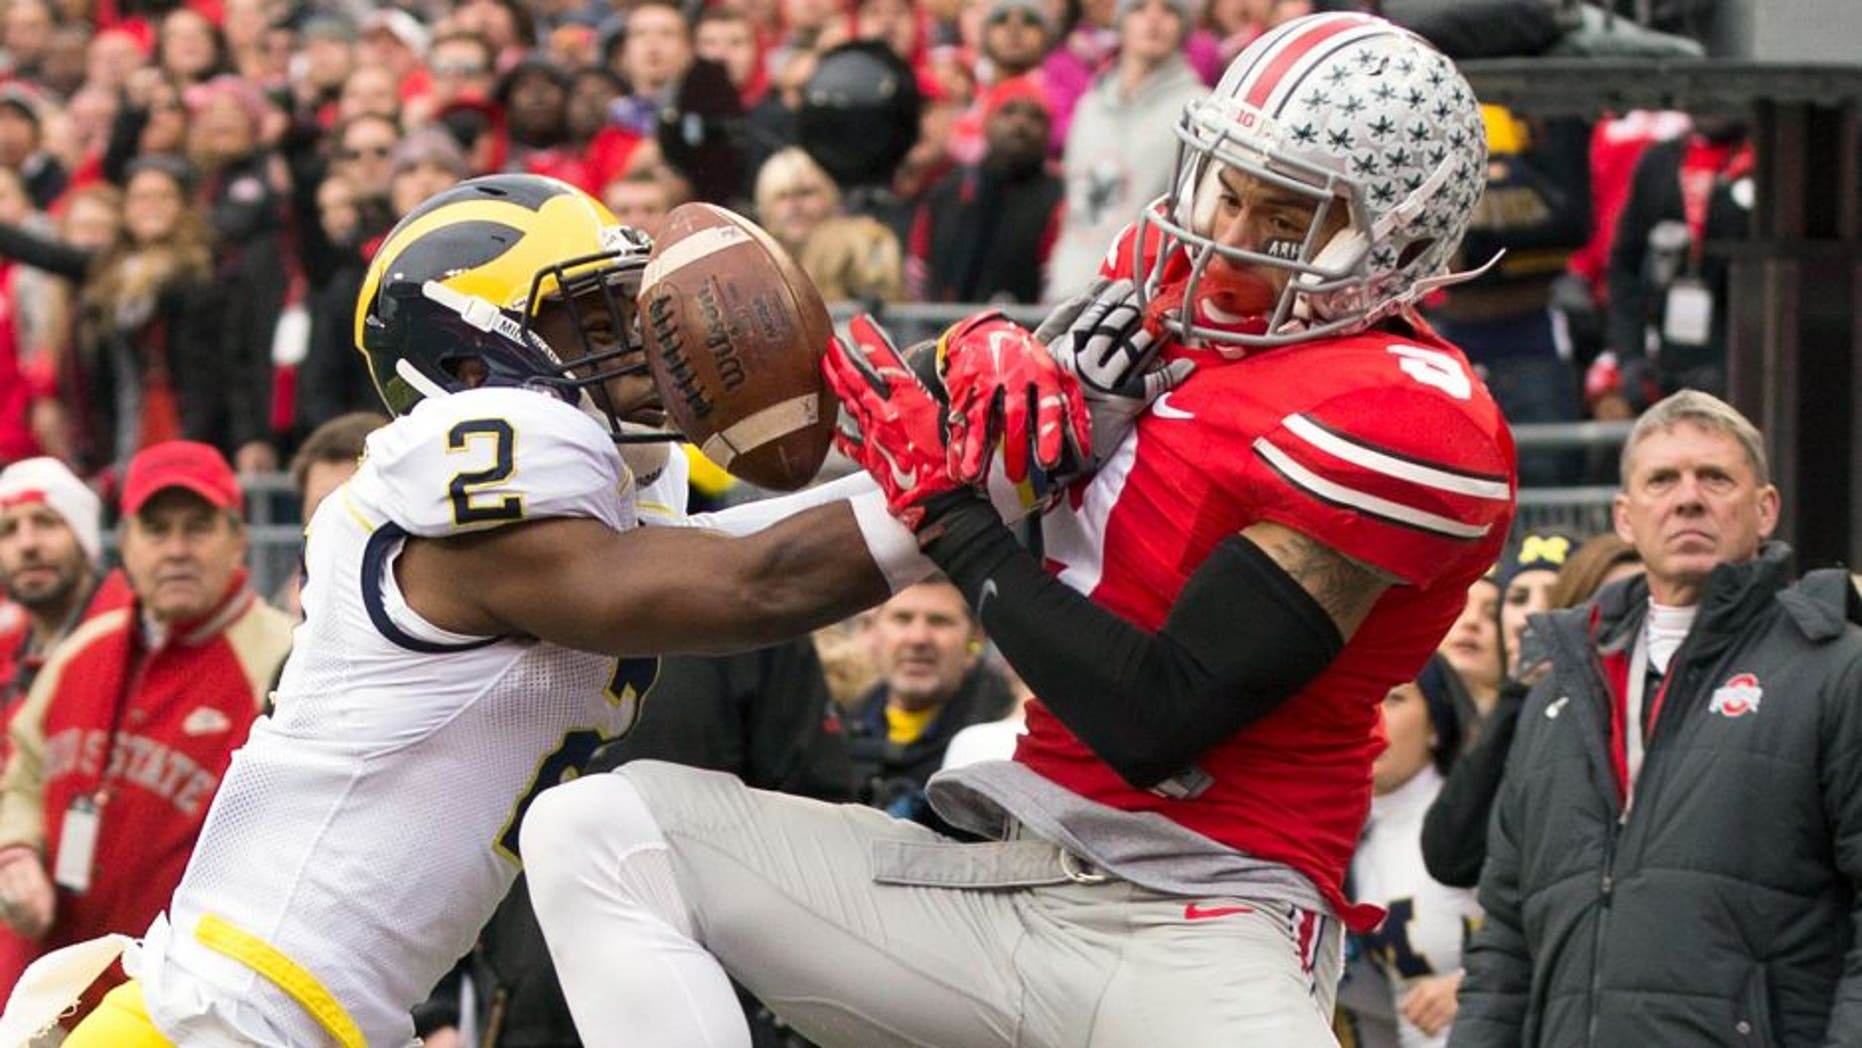 Nov 29, 2014; Columbus, OH, USA; Michigan Wolverines defensive back Blake Countess (2) breaks up a pass intended for Ohio State Buckeyes wide receiver Devin Smith (9) at Ohio Stadium. Mandatory Credit: Greg Bartram-USA TODAY Sports